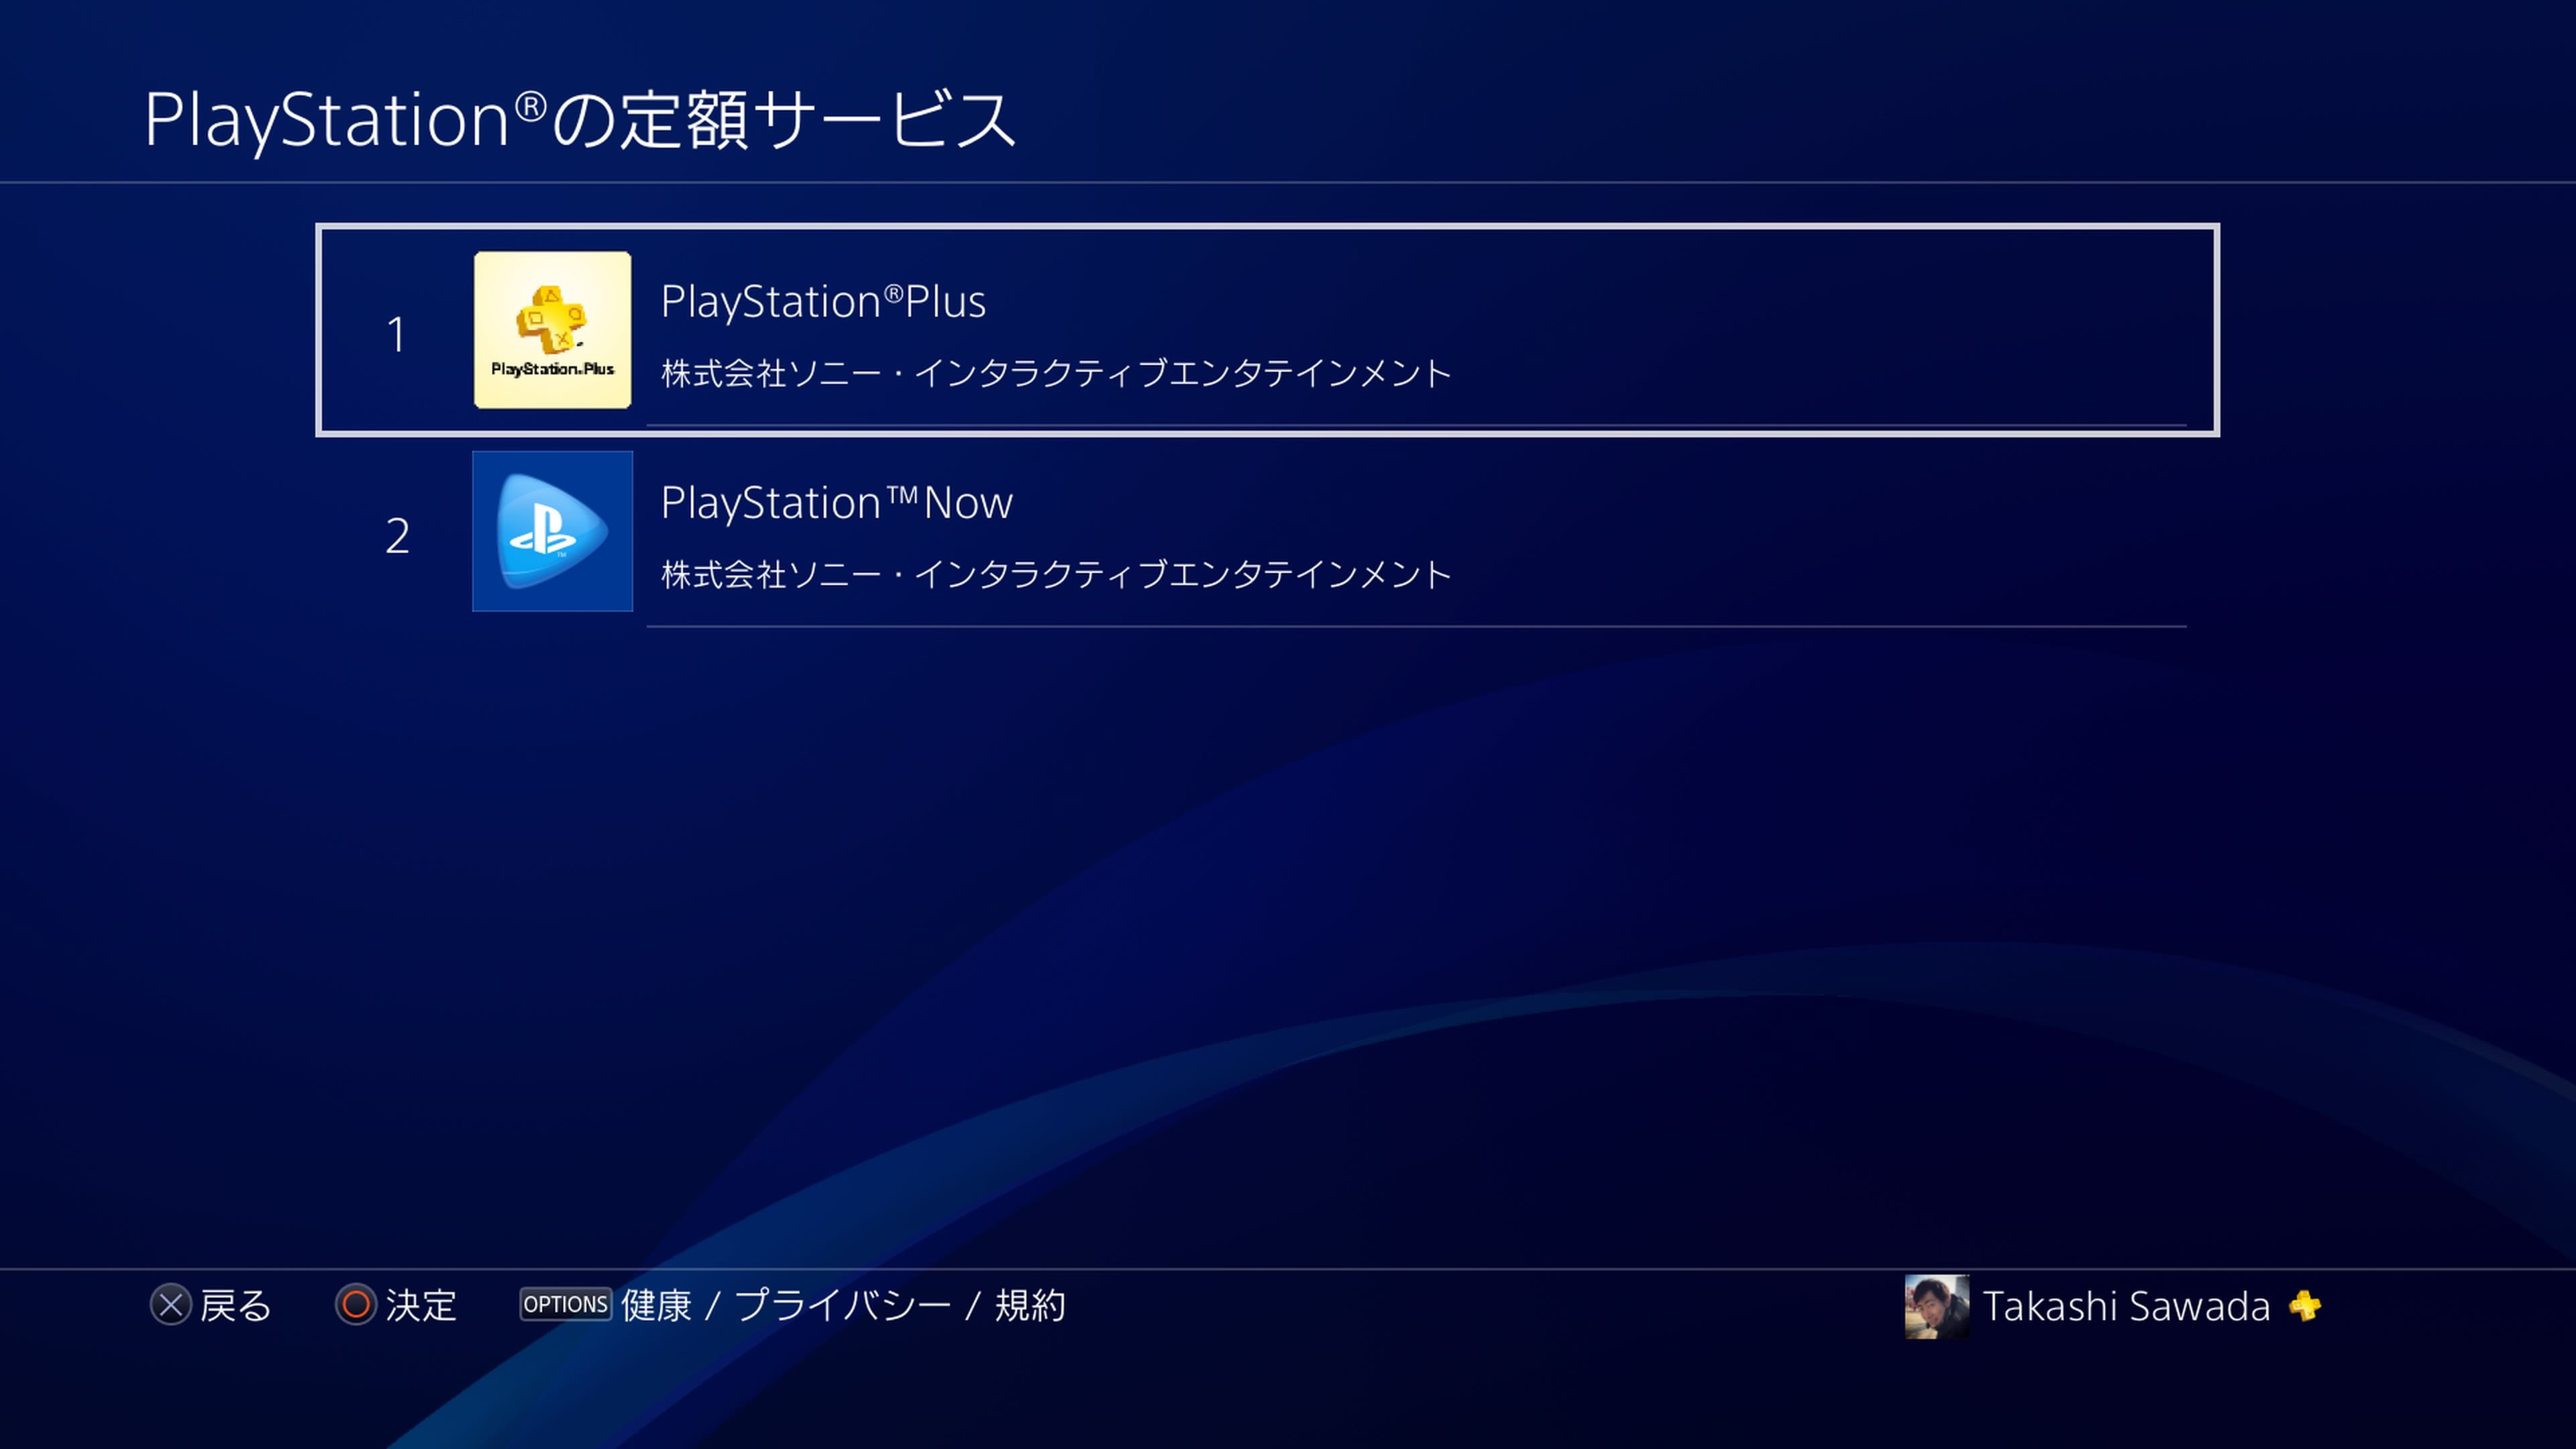 How to cancel auto update psnow and psplus for playstaton4 5